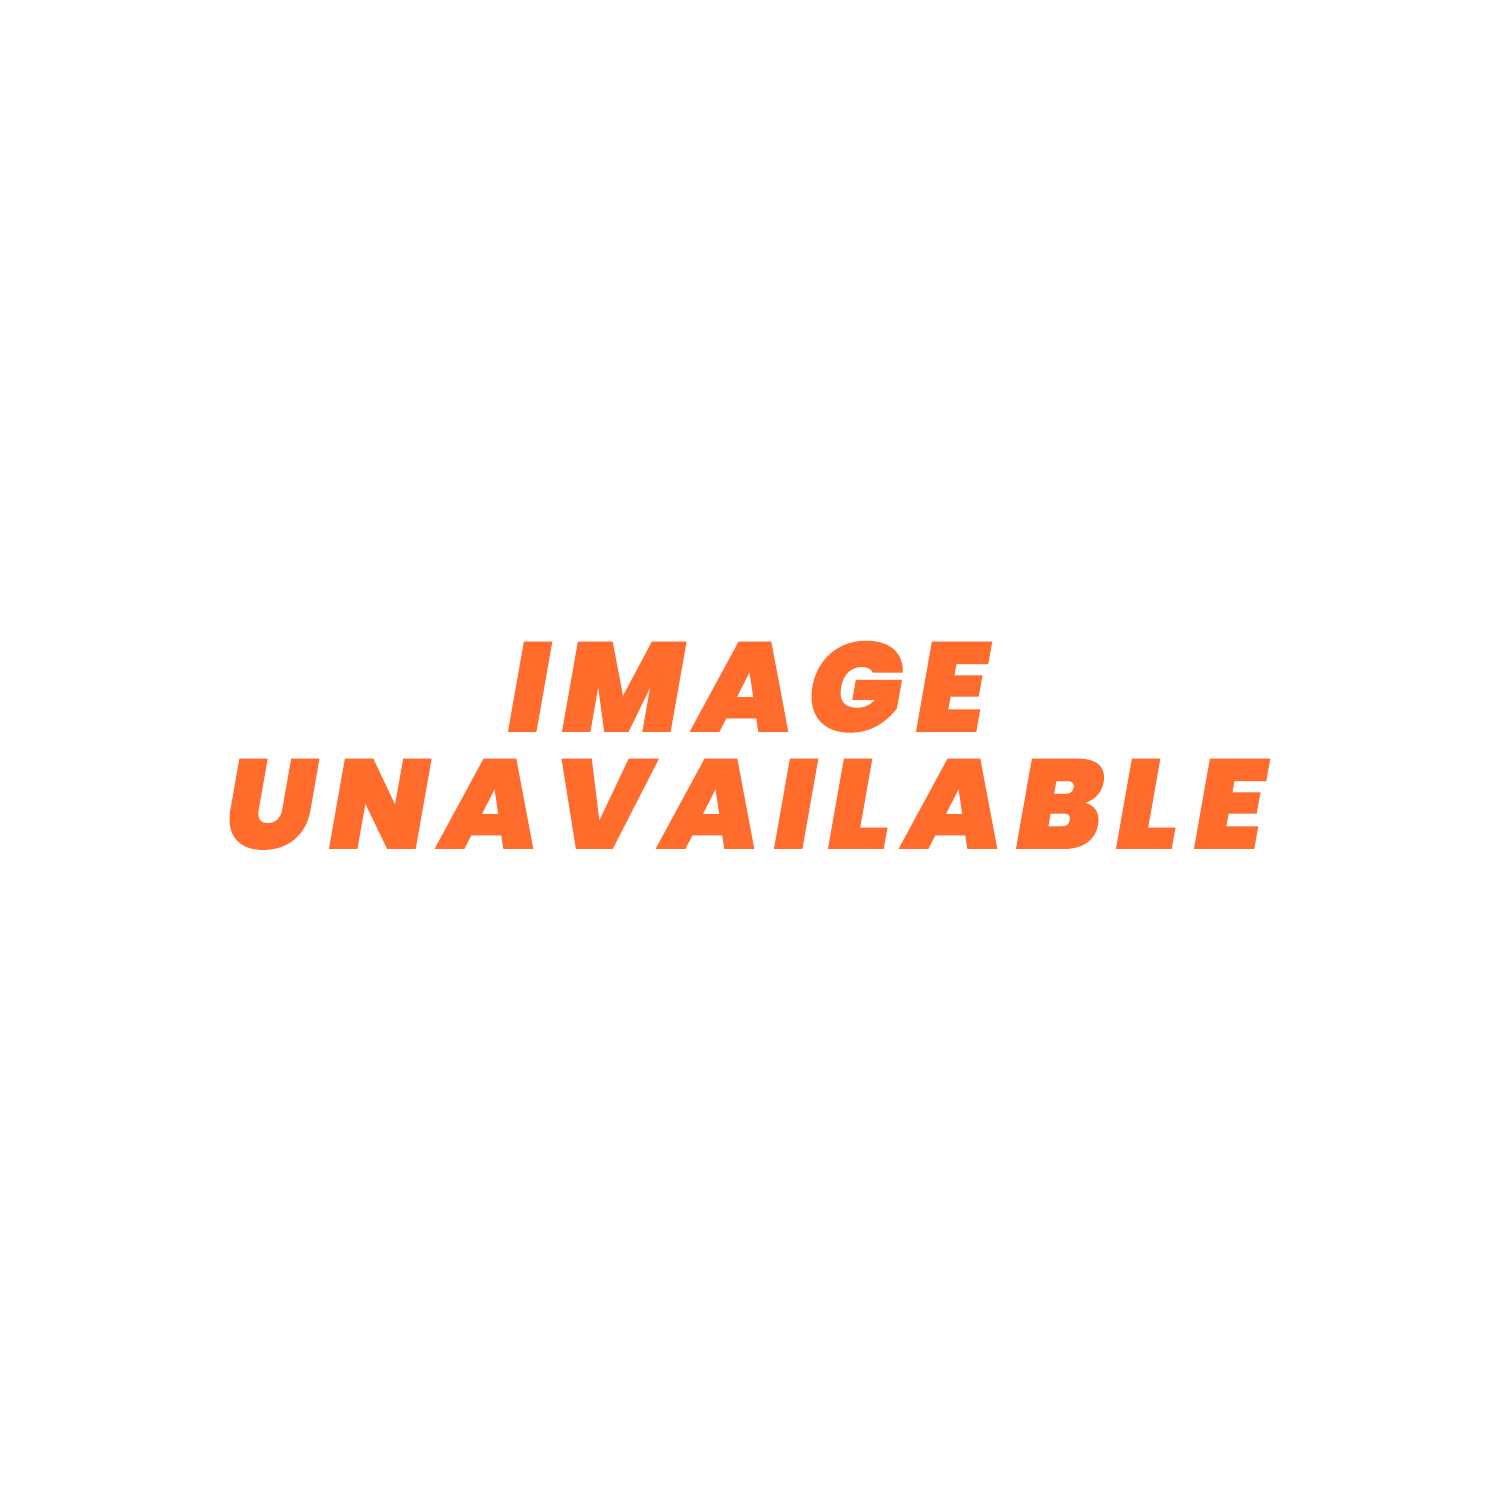 072 Strap Battery Tray - 177 x 270 mm